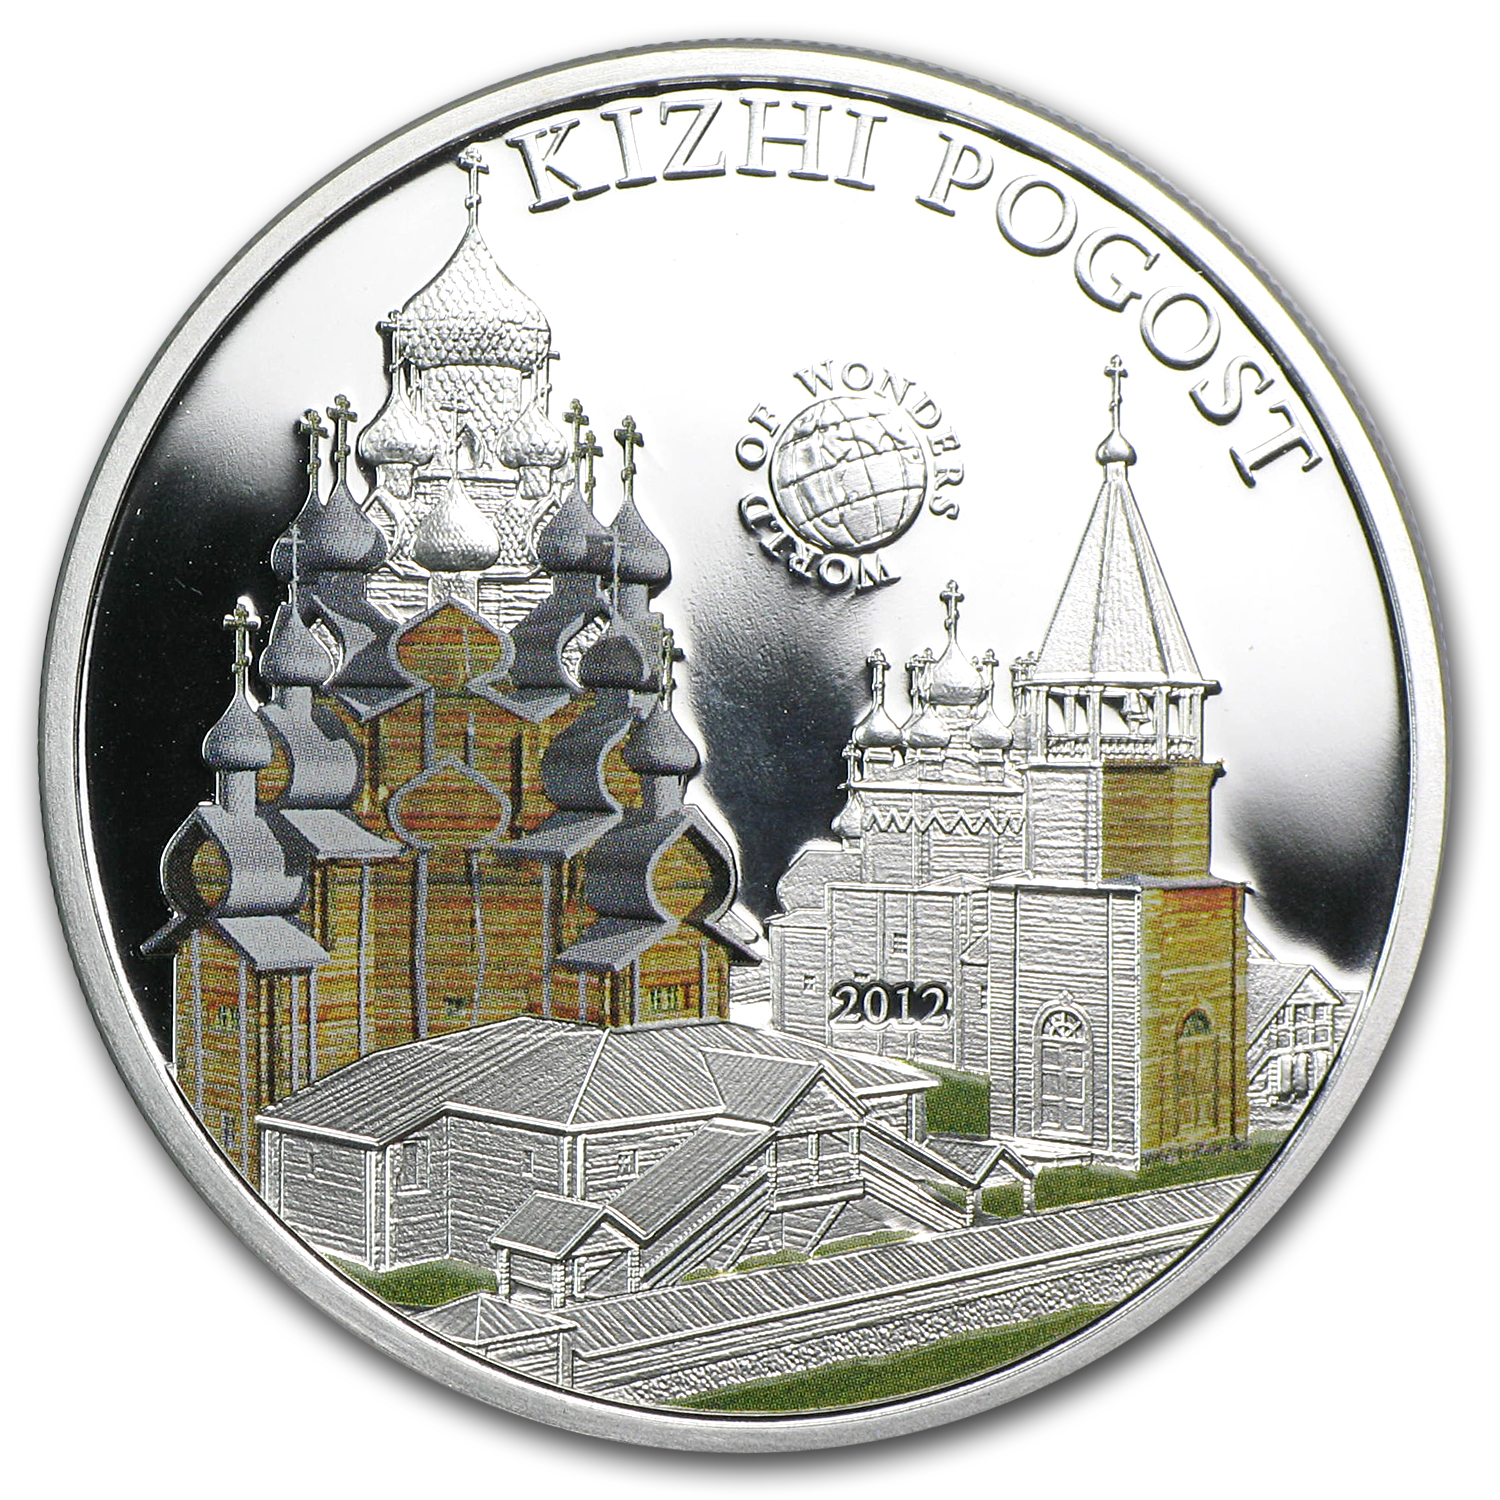 2012 Palau Proof Silver $5 World of Wonders Kizhi Pogost